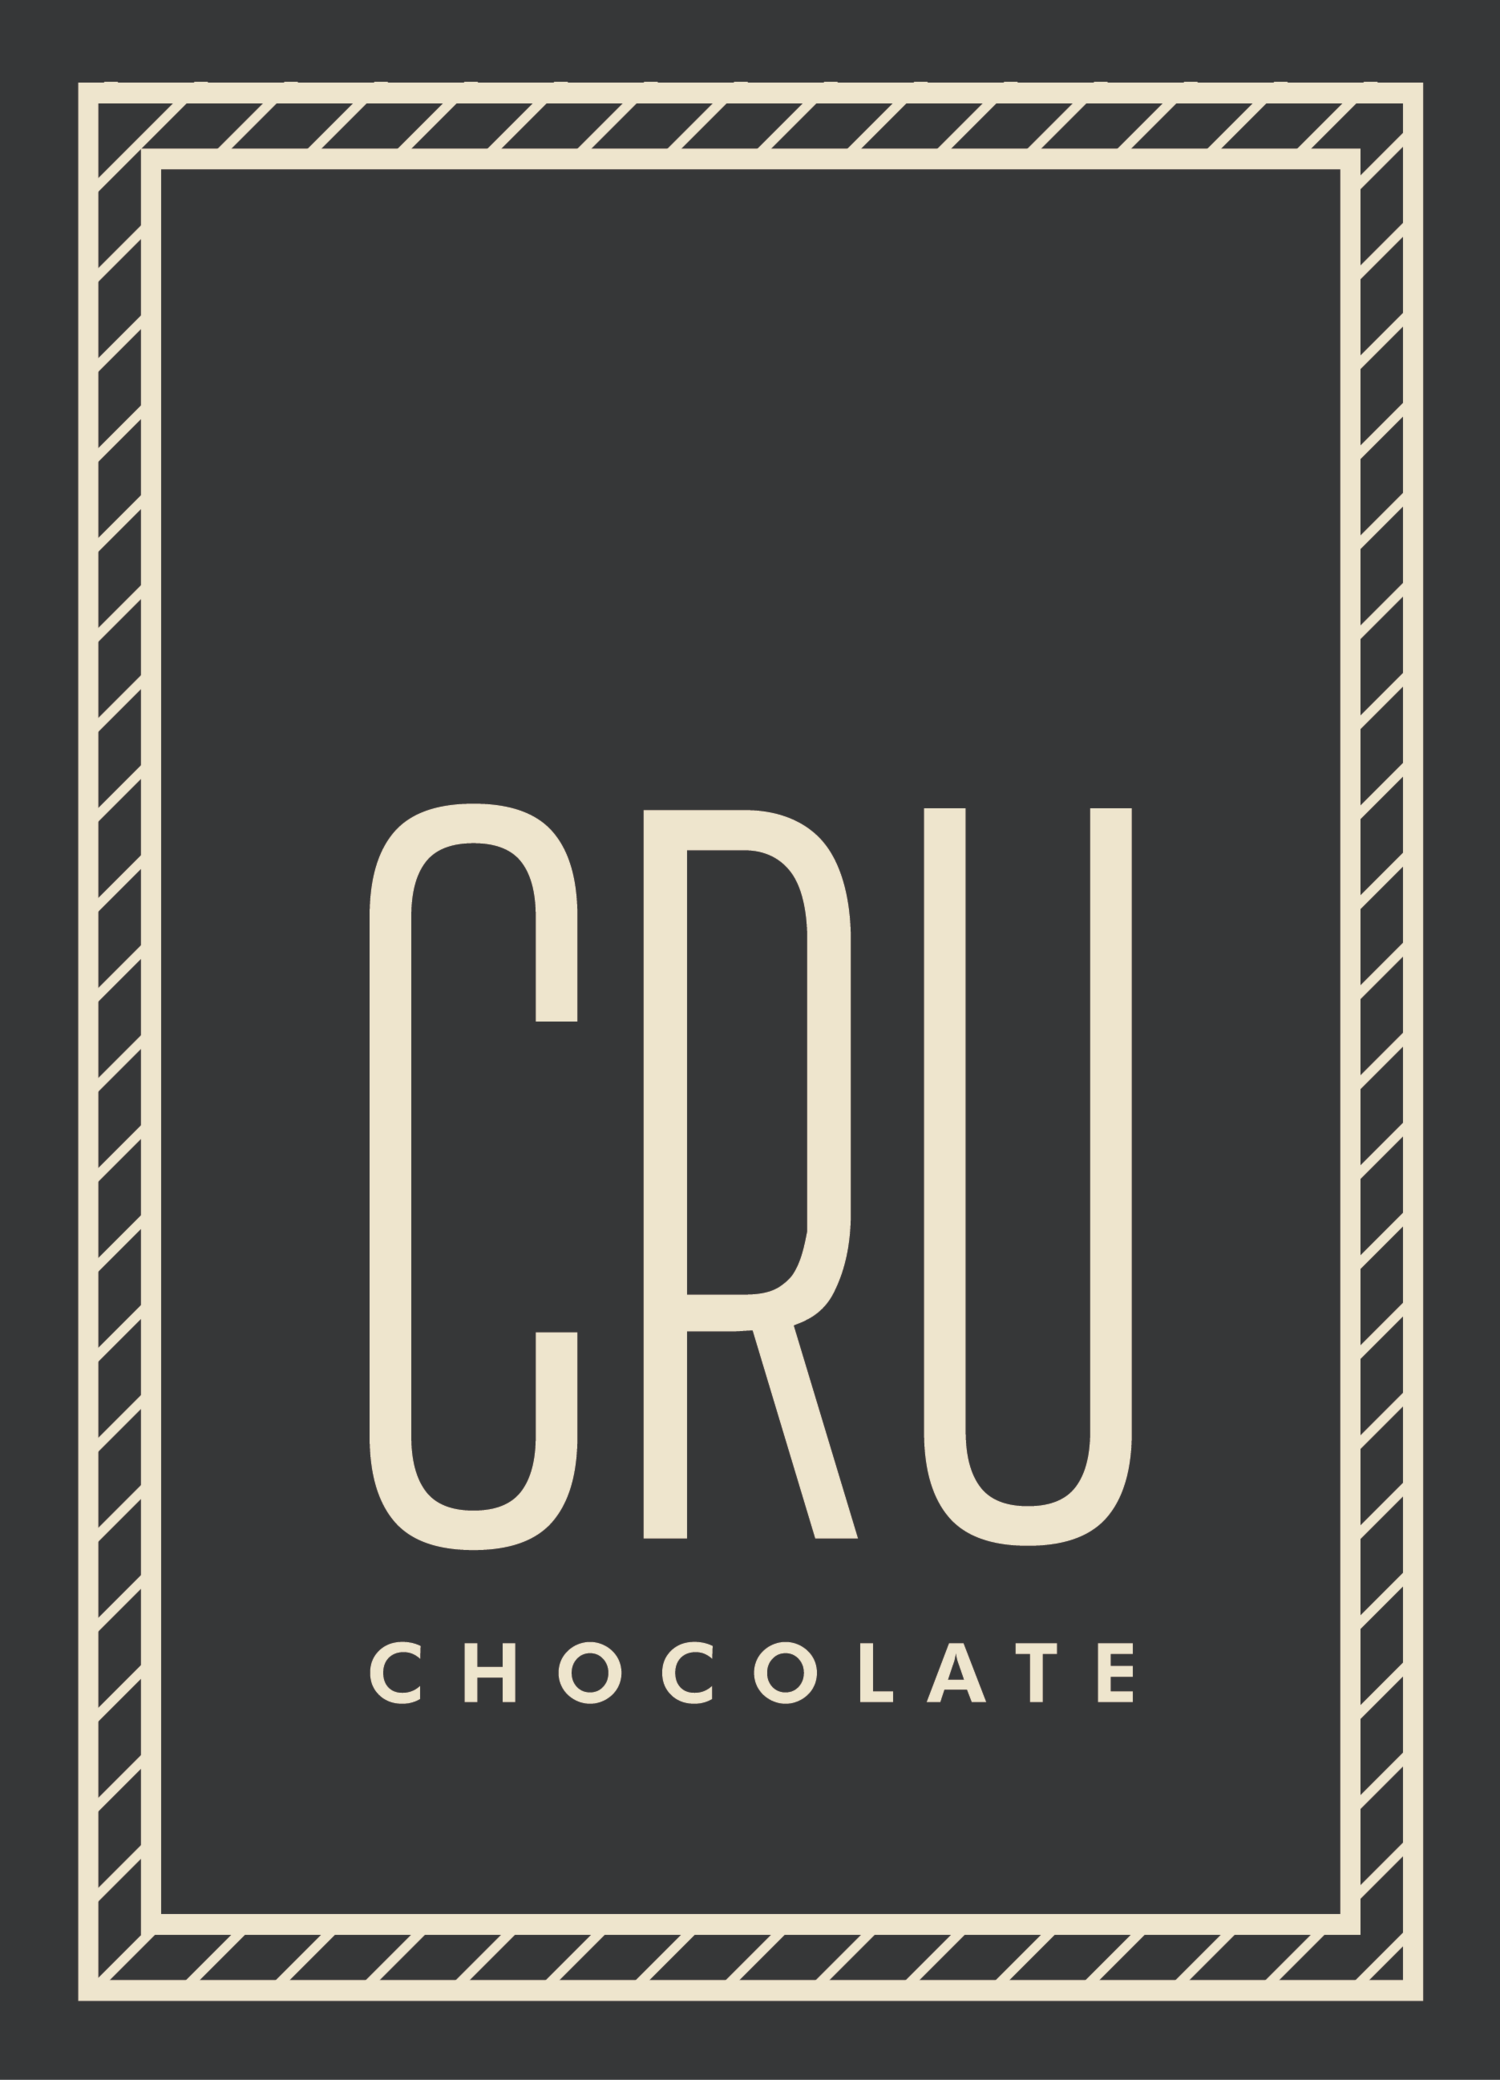 Cru Chocolate